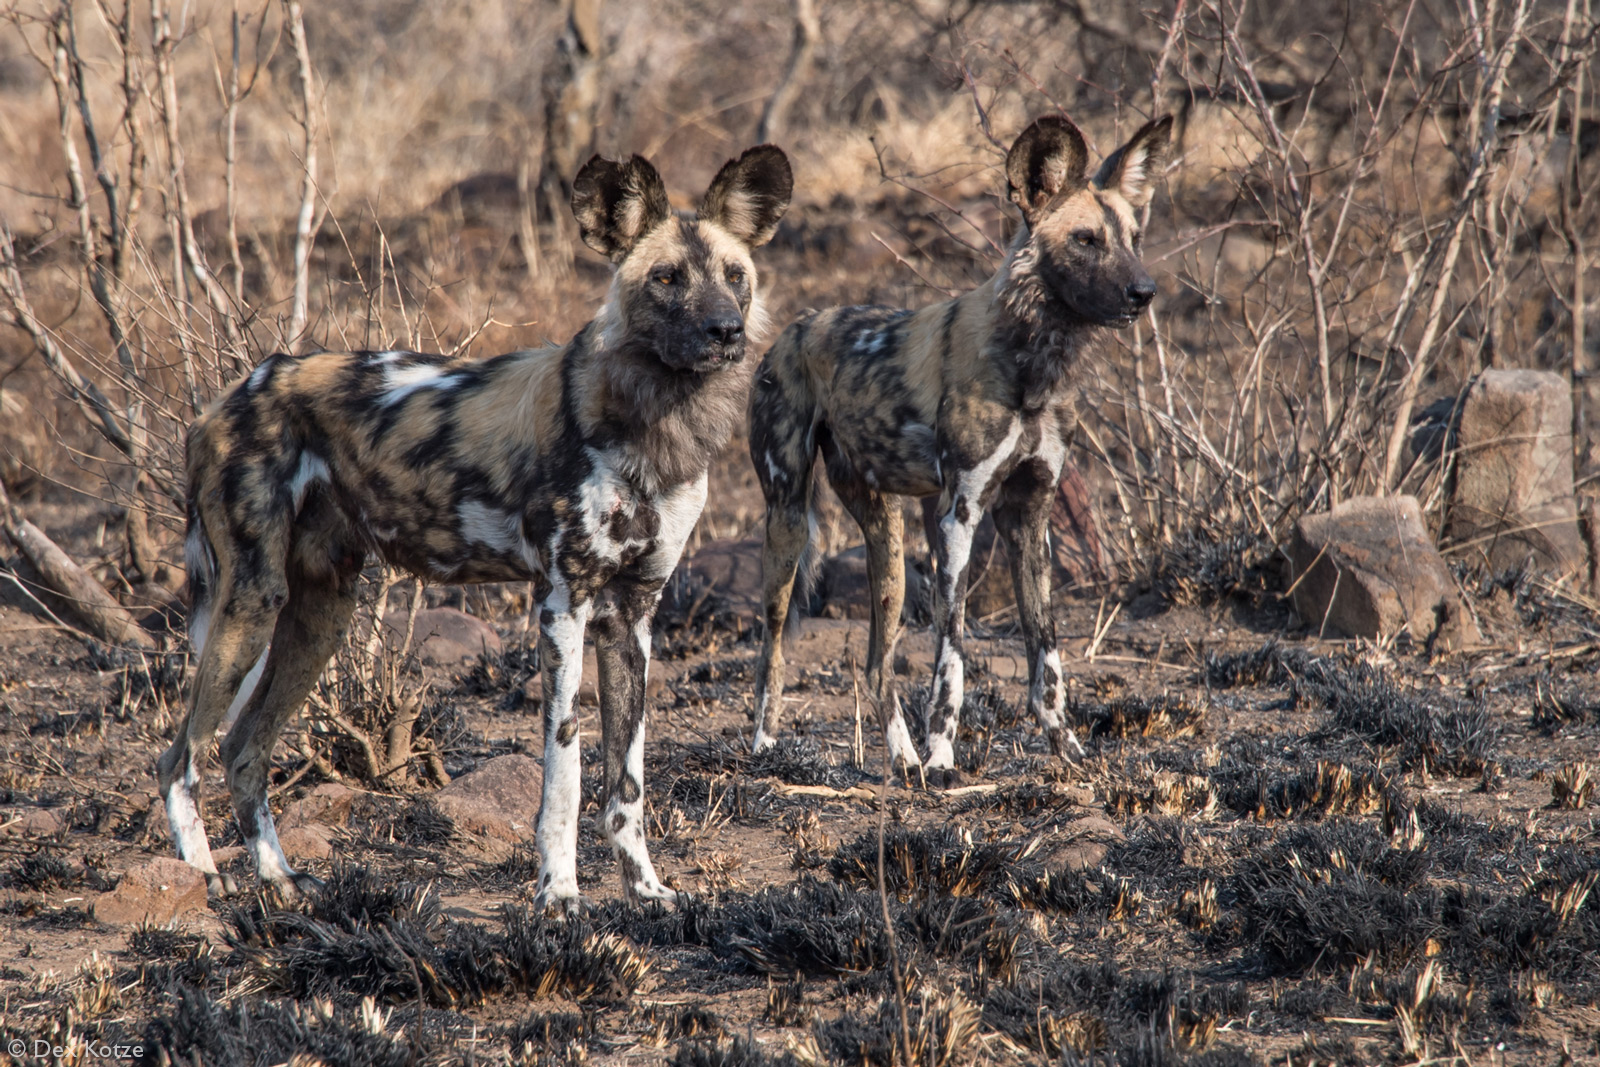 African wild dogs, or painted wolves